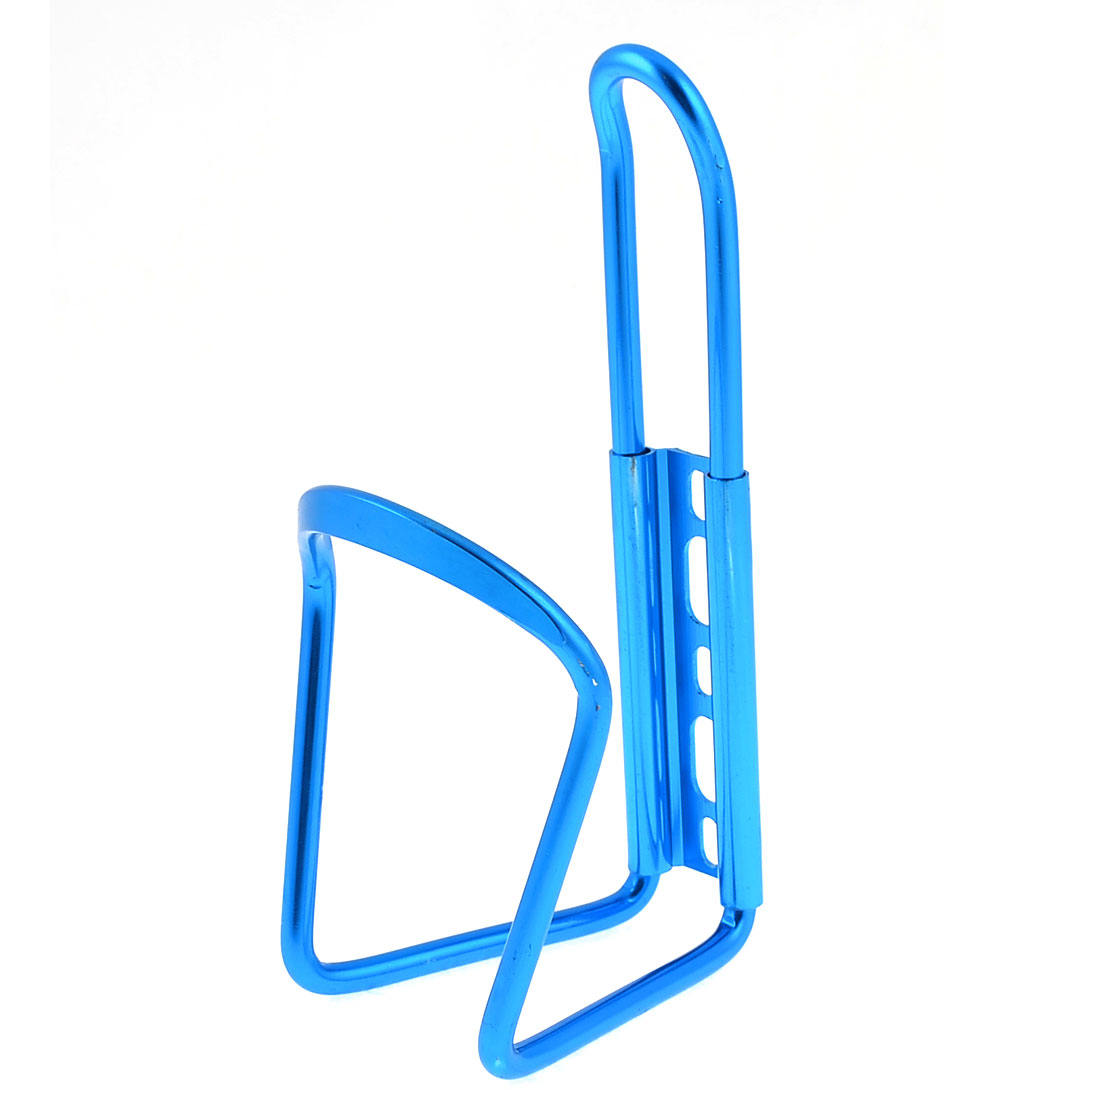 Outdoor Cycling Bike Light Blue Aluminum Alloy Water Bottle Holder Cage